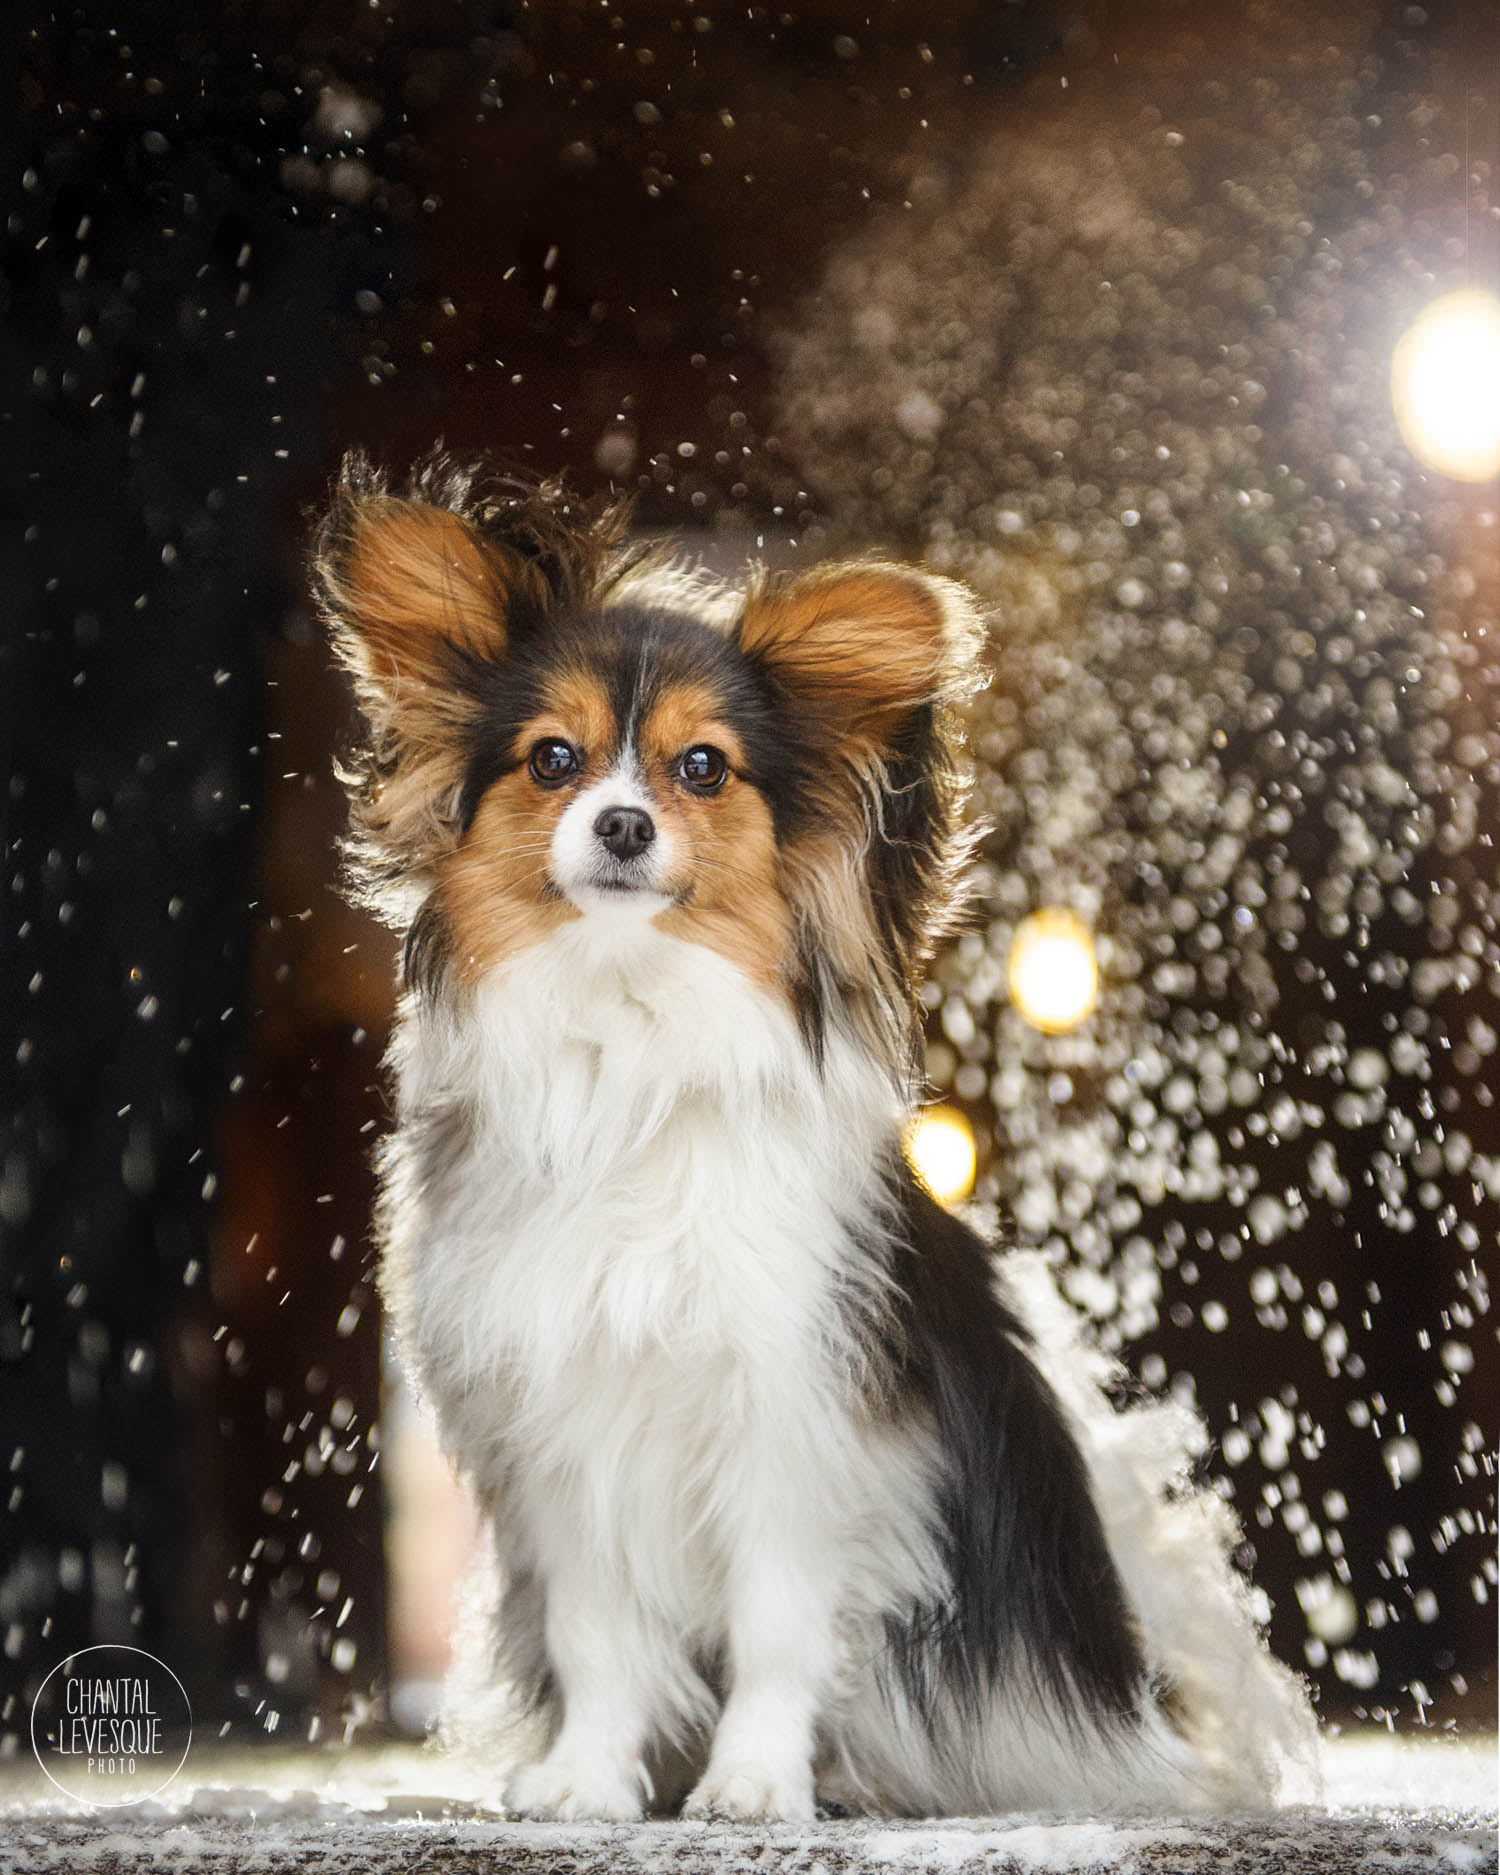 papillon-snow-lights-portrait.jpg